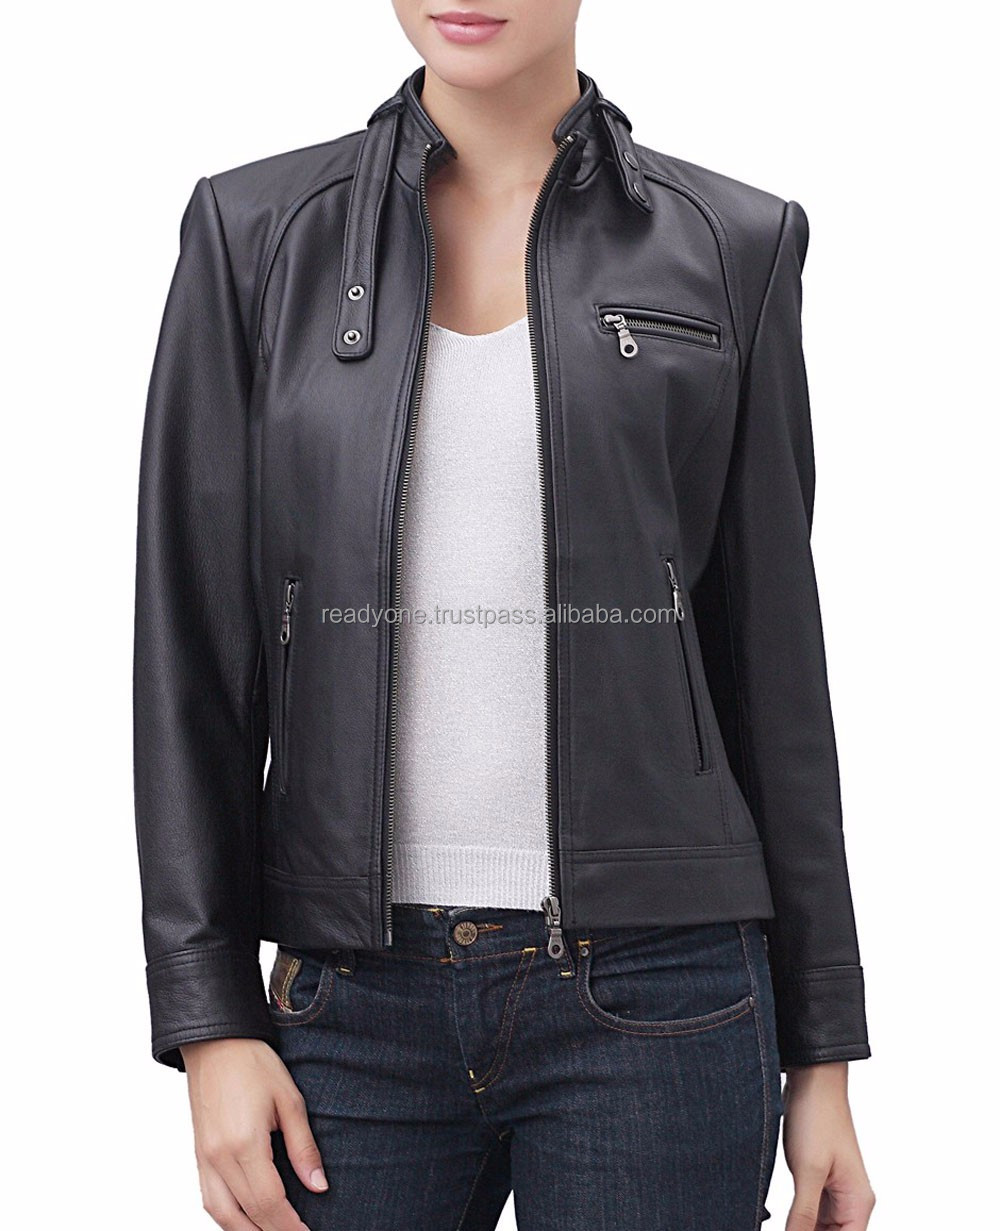 OEM bulk wholesale Hi-end fashion fall winter pu leather jacket women